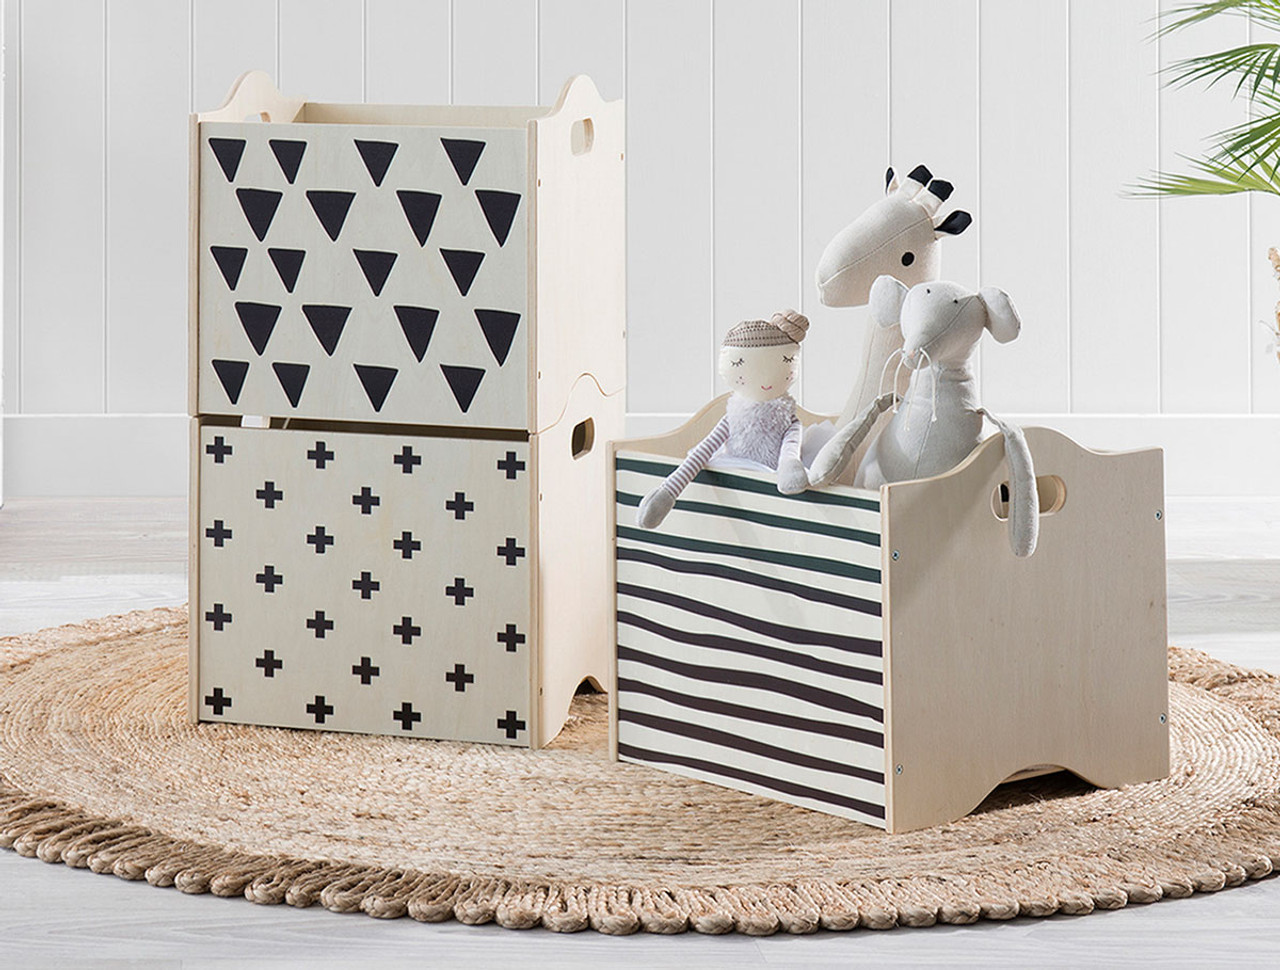 10 Ways to Hide Toys From Visitors